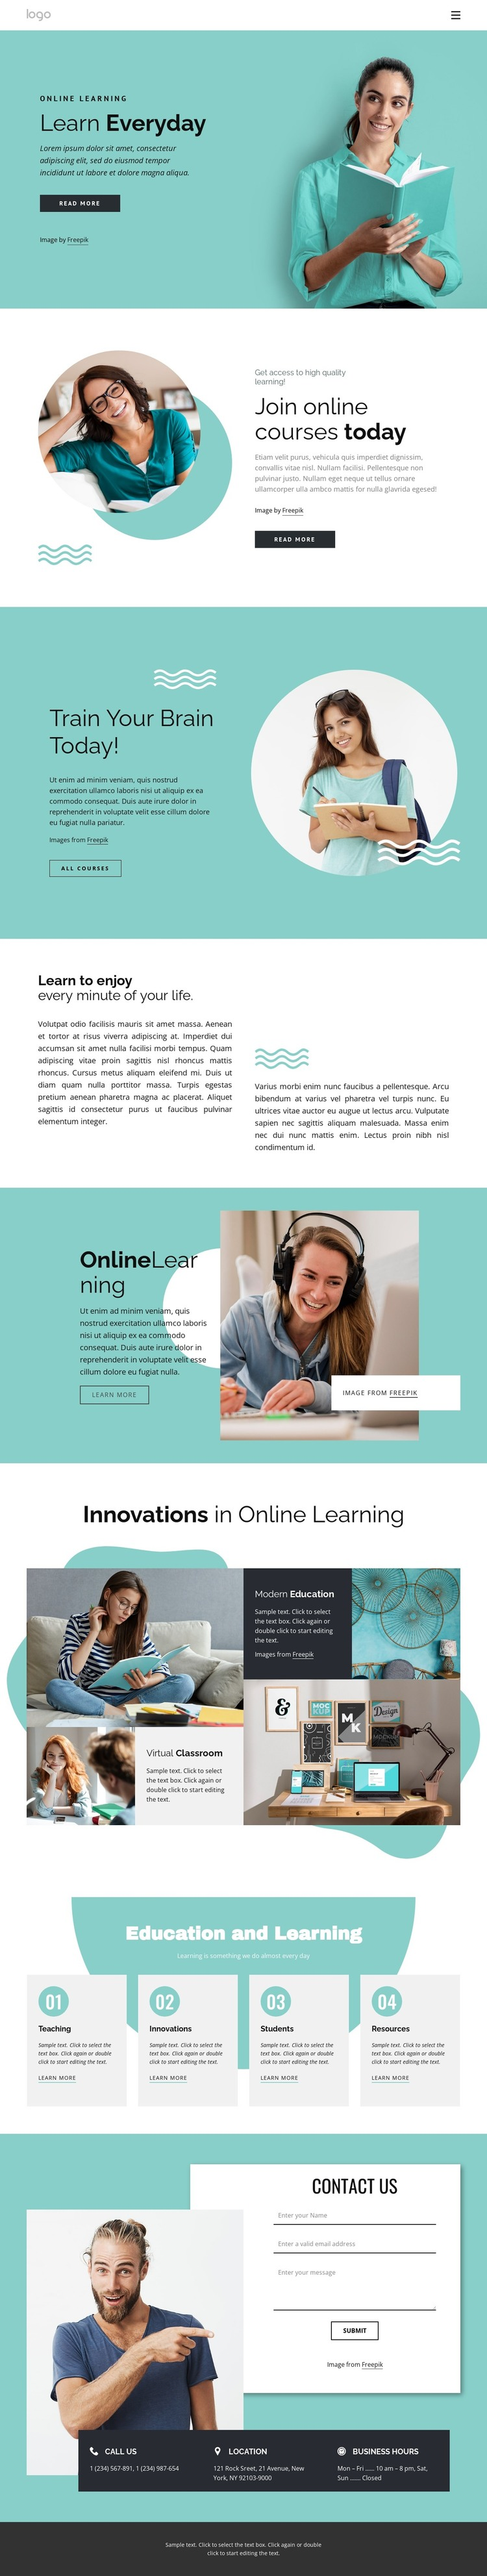 Learning is a lifelong process Web Design